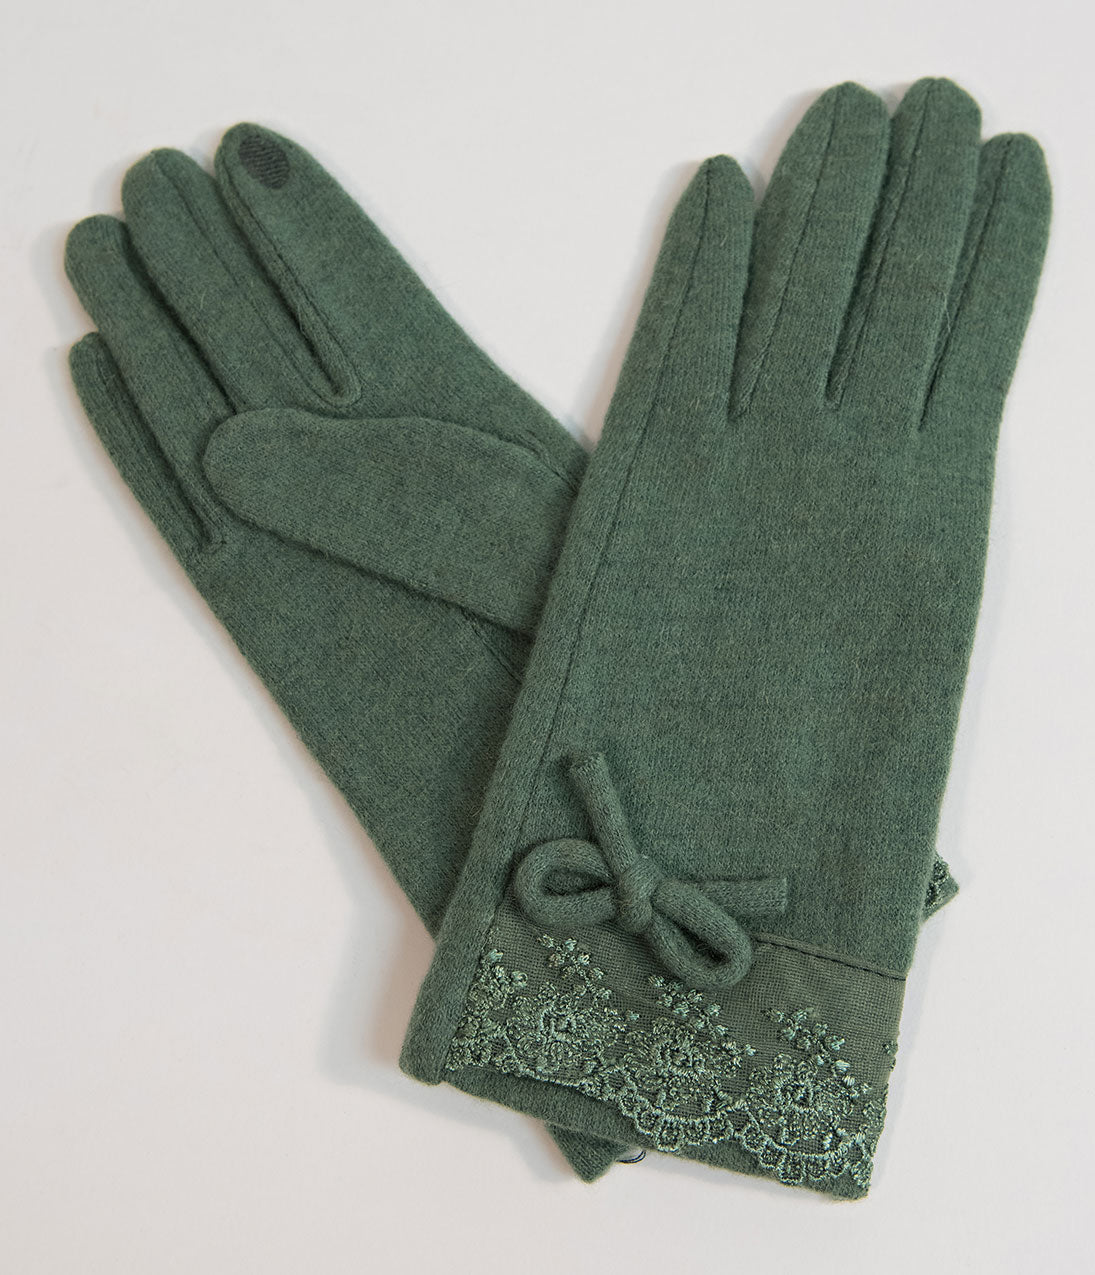 Vintage Style Gloves- Long, Wrist, Evening, Day, Leather, Lace Vintage Style Moss Green Lace  Bow Wrist Gloves $30.00 AT vintagedancer.com